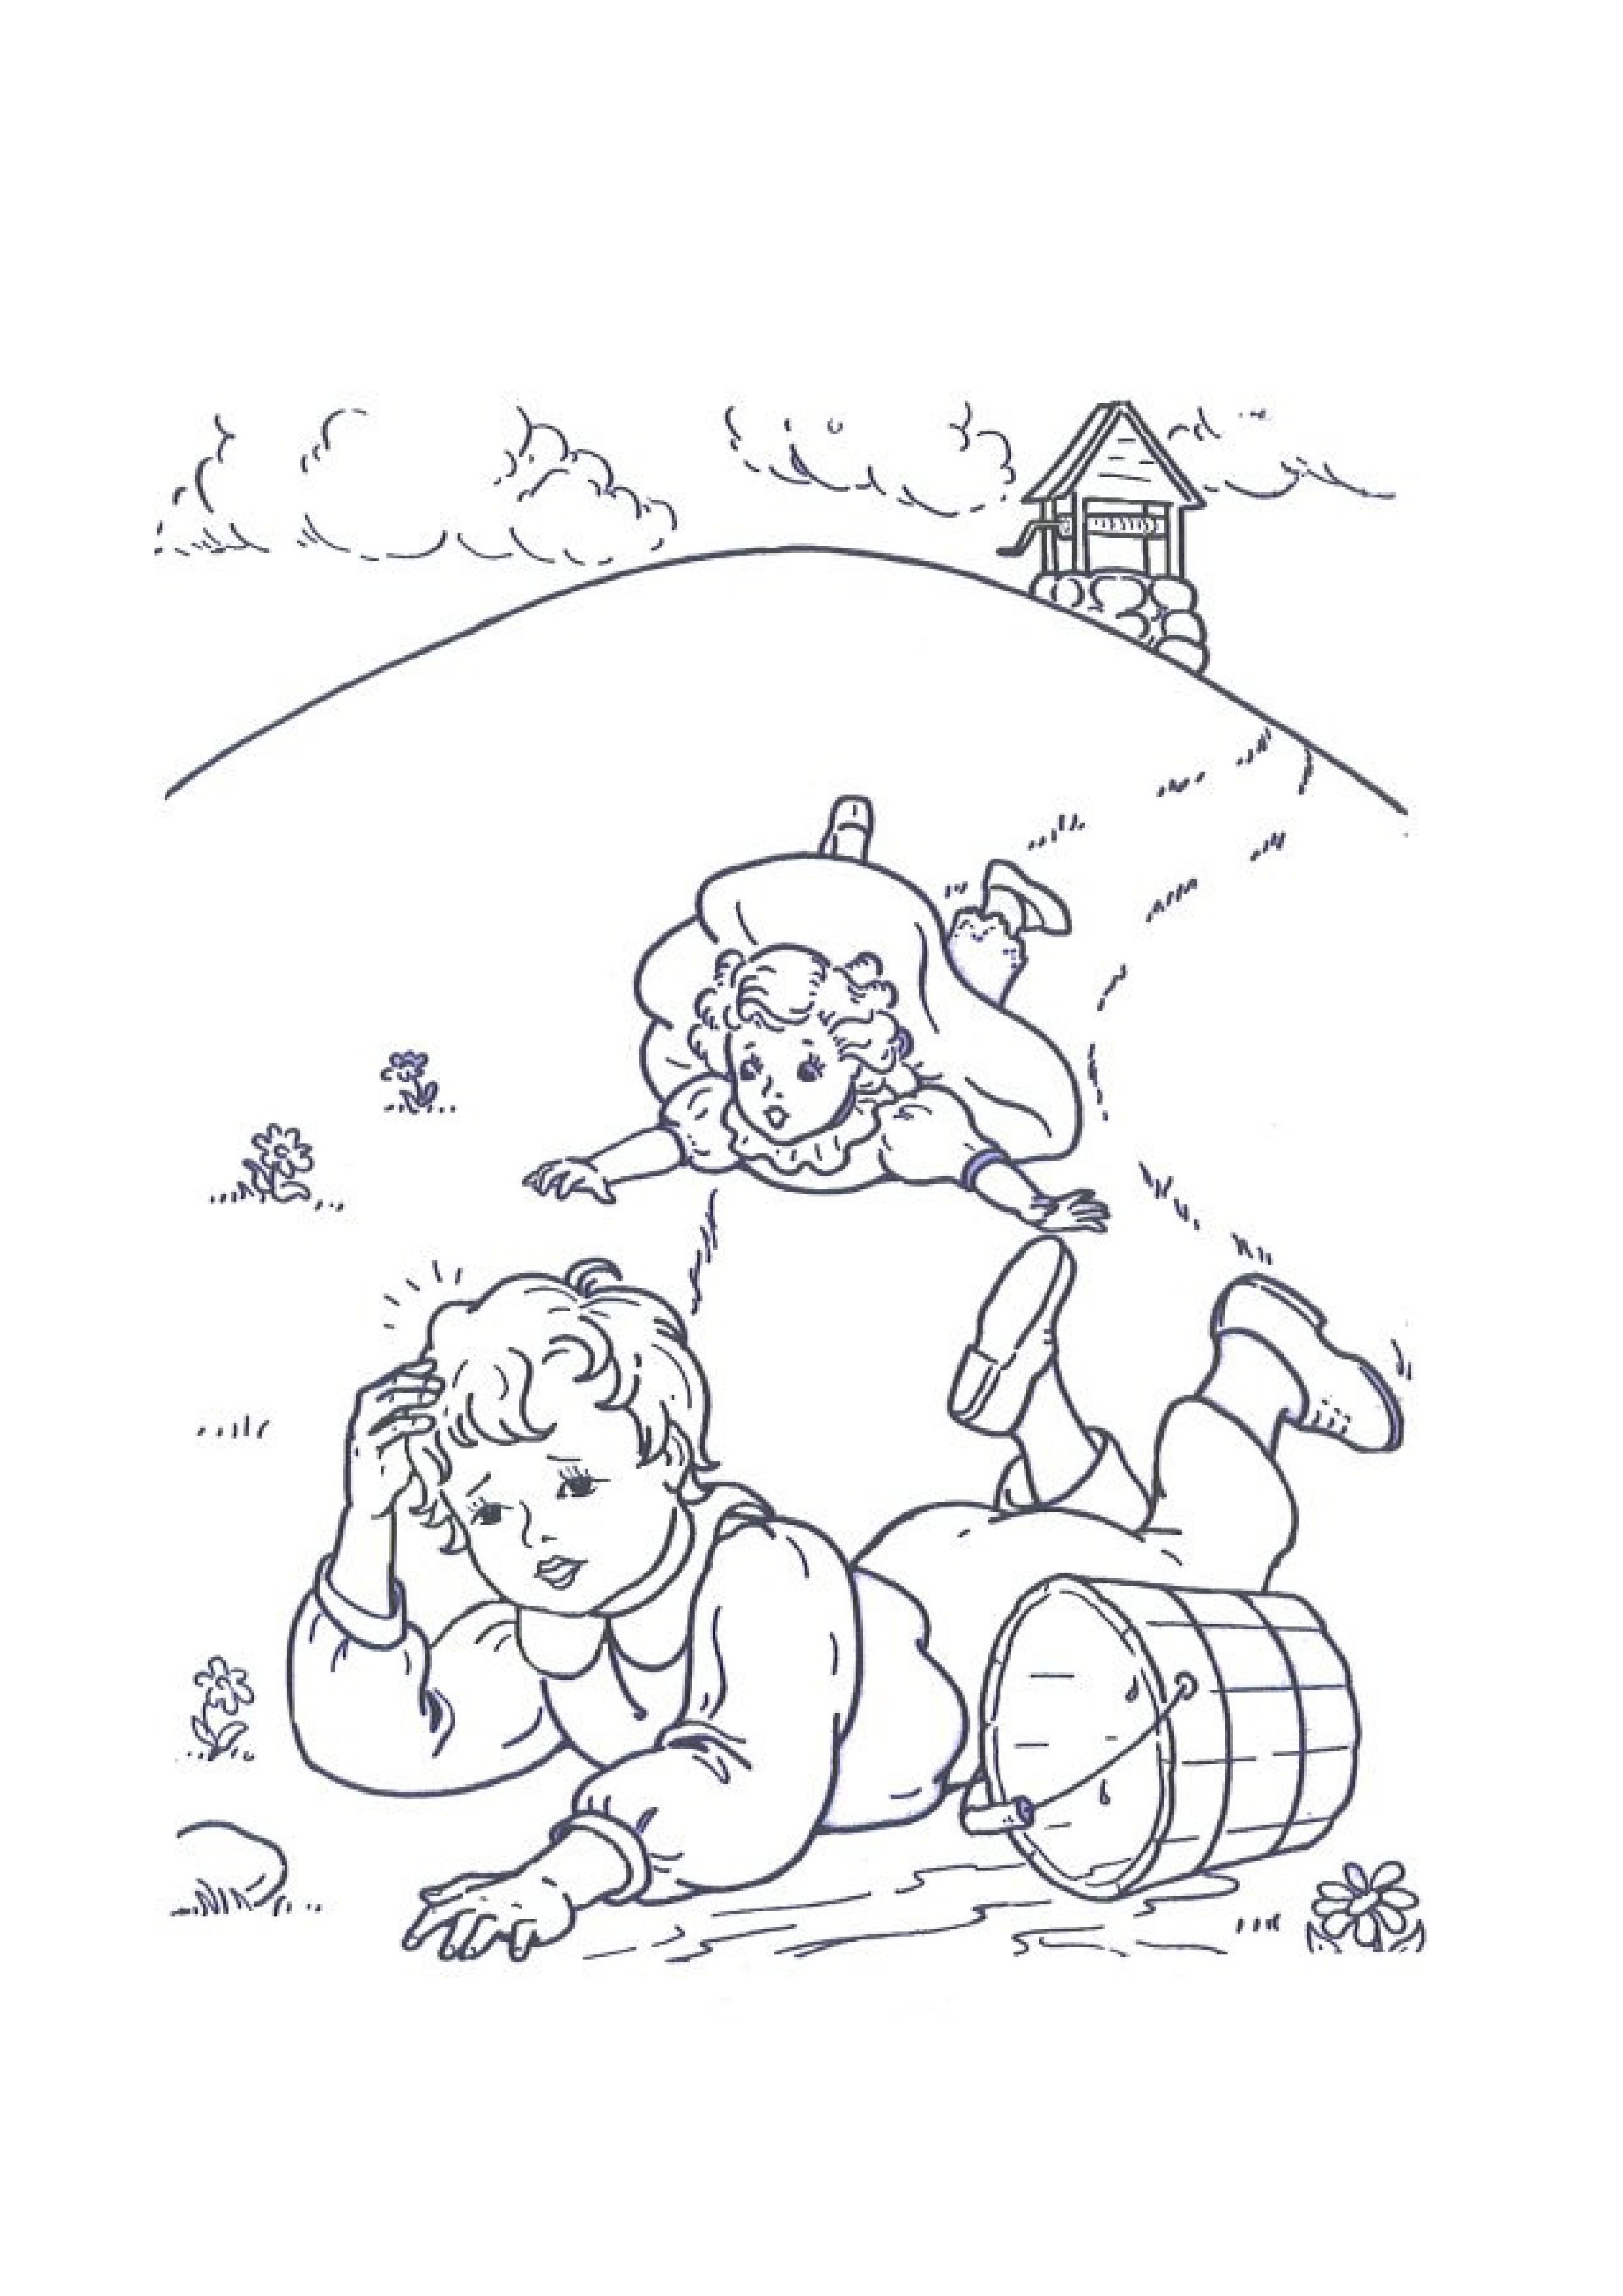 Nursery Rhymes Coloring Pages Printable Free Download Sheets For Kids To Draw And Color Activity 21 Jpg Coloring Pages Baby Coloring Pages Fall Coloring Pages